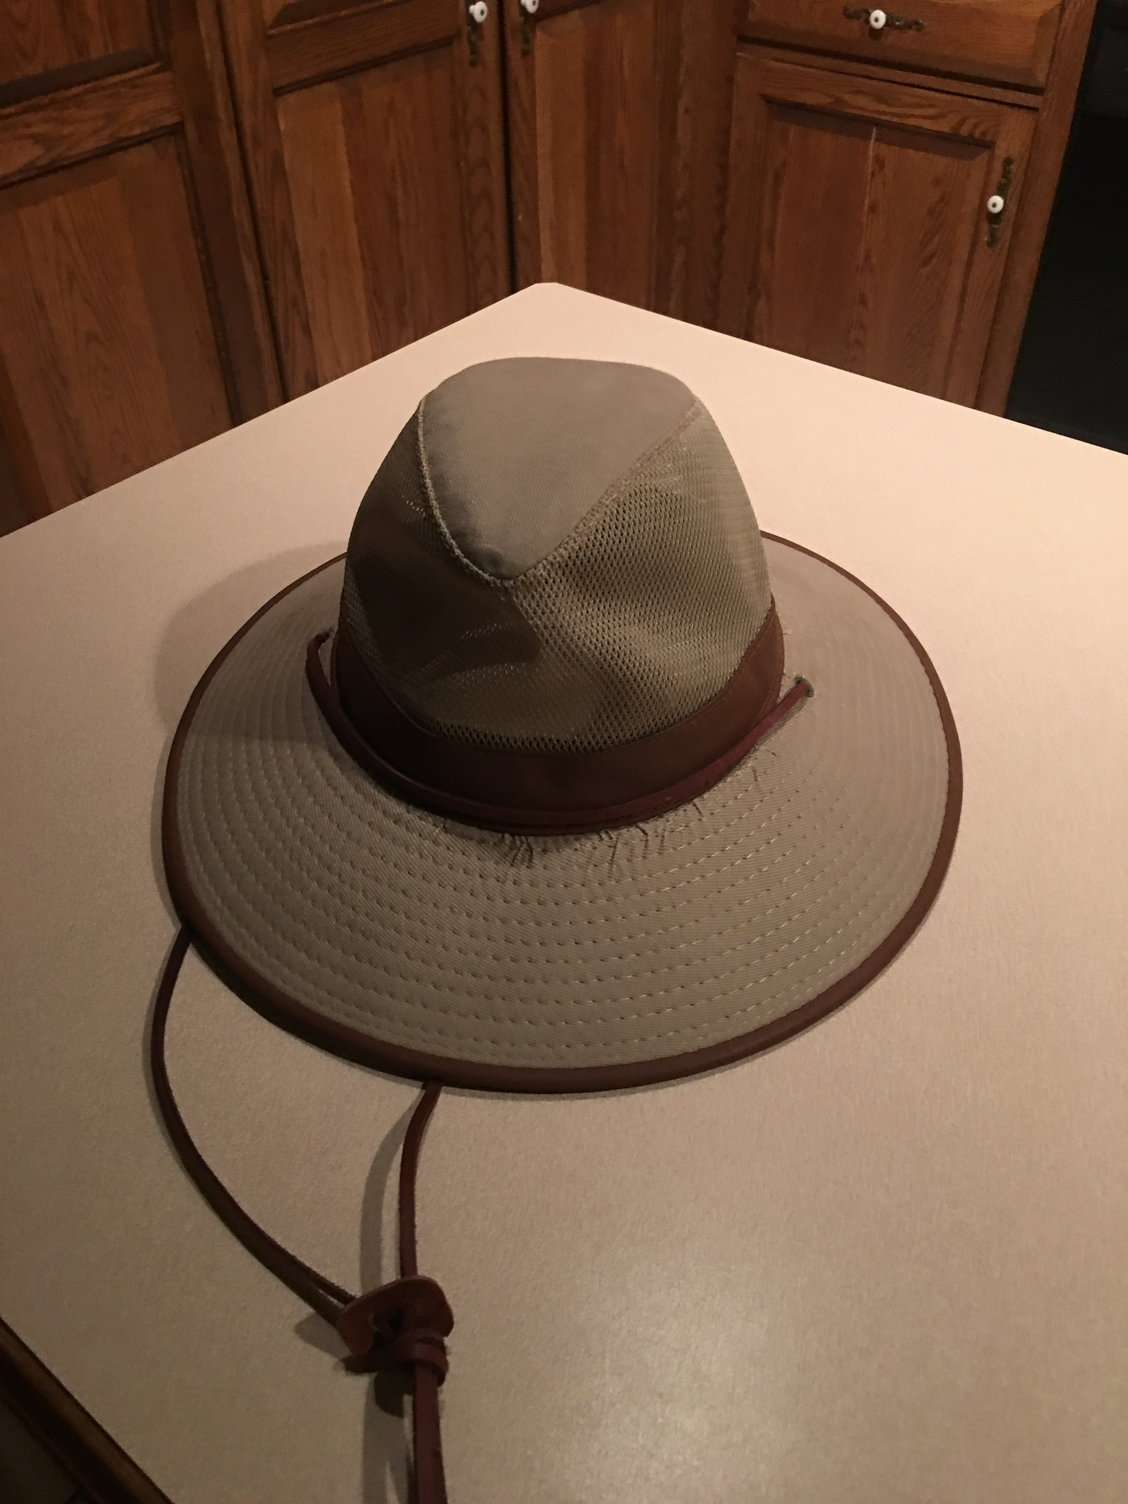 The brim is stiff and doesn t flop running at 30 knots. The vents mesh on  top are not perfect for sun protection. But the stiff brim makes up for it. b99a7de201bb